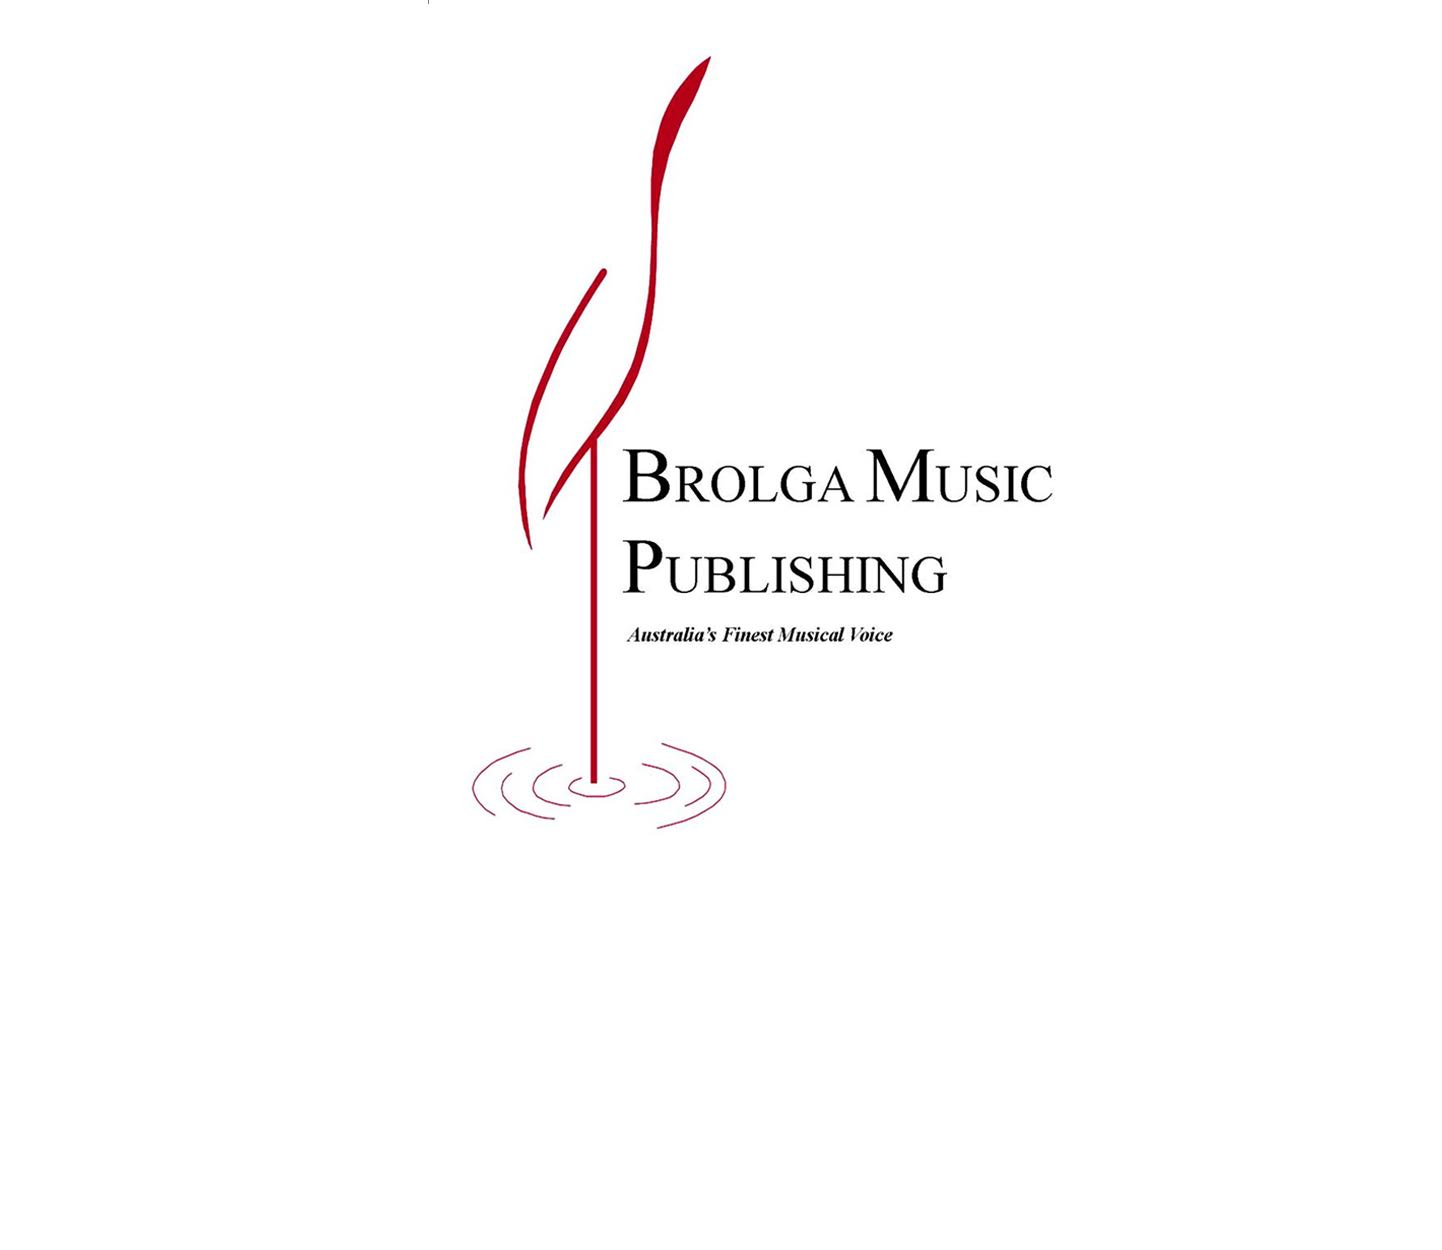 Brolga Music Publishing Company